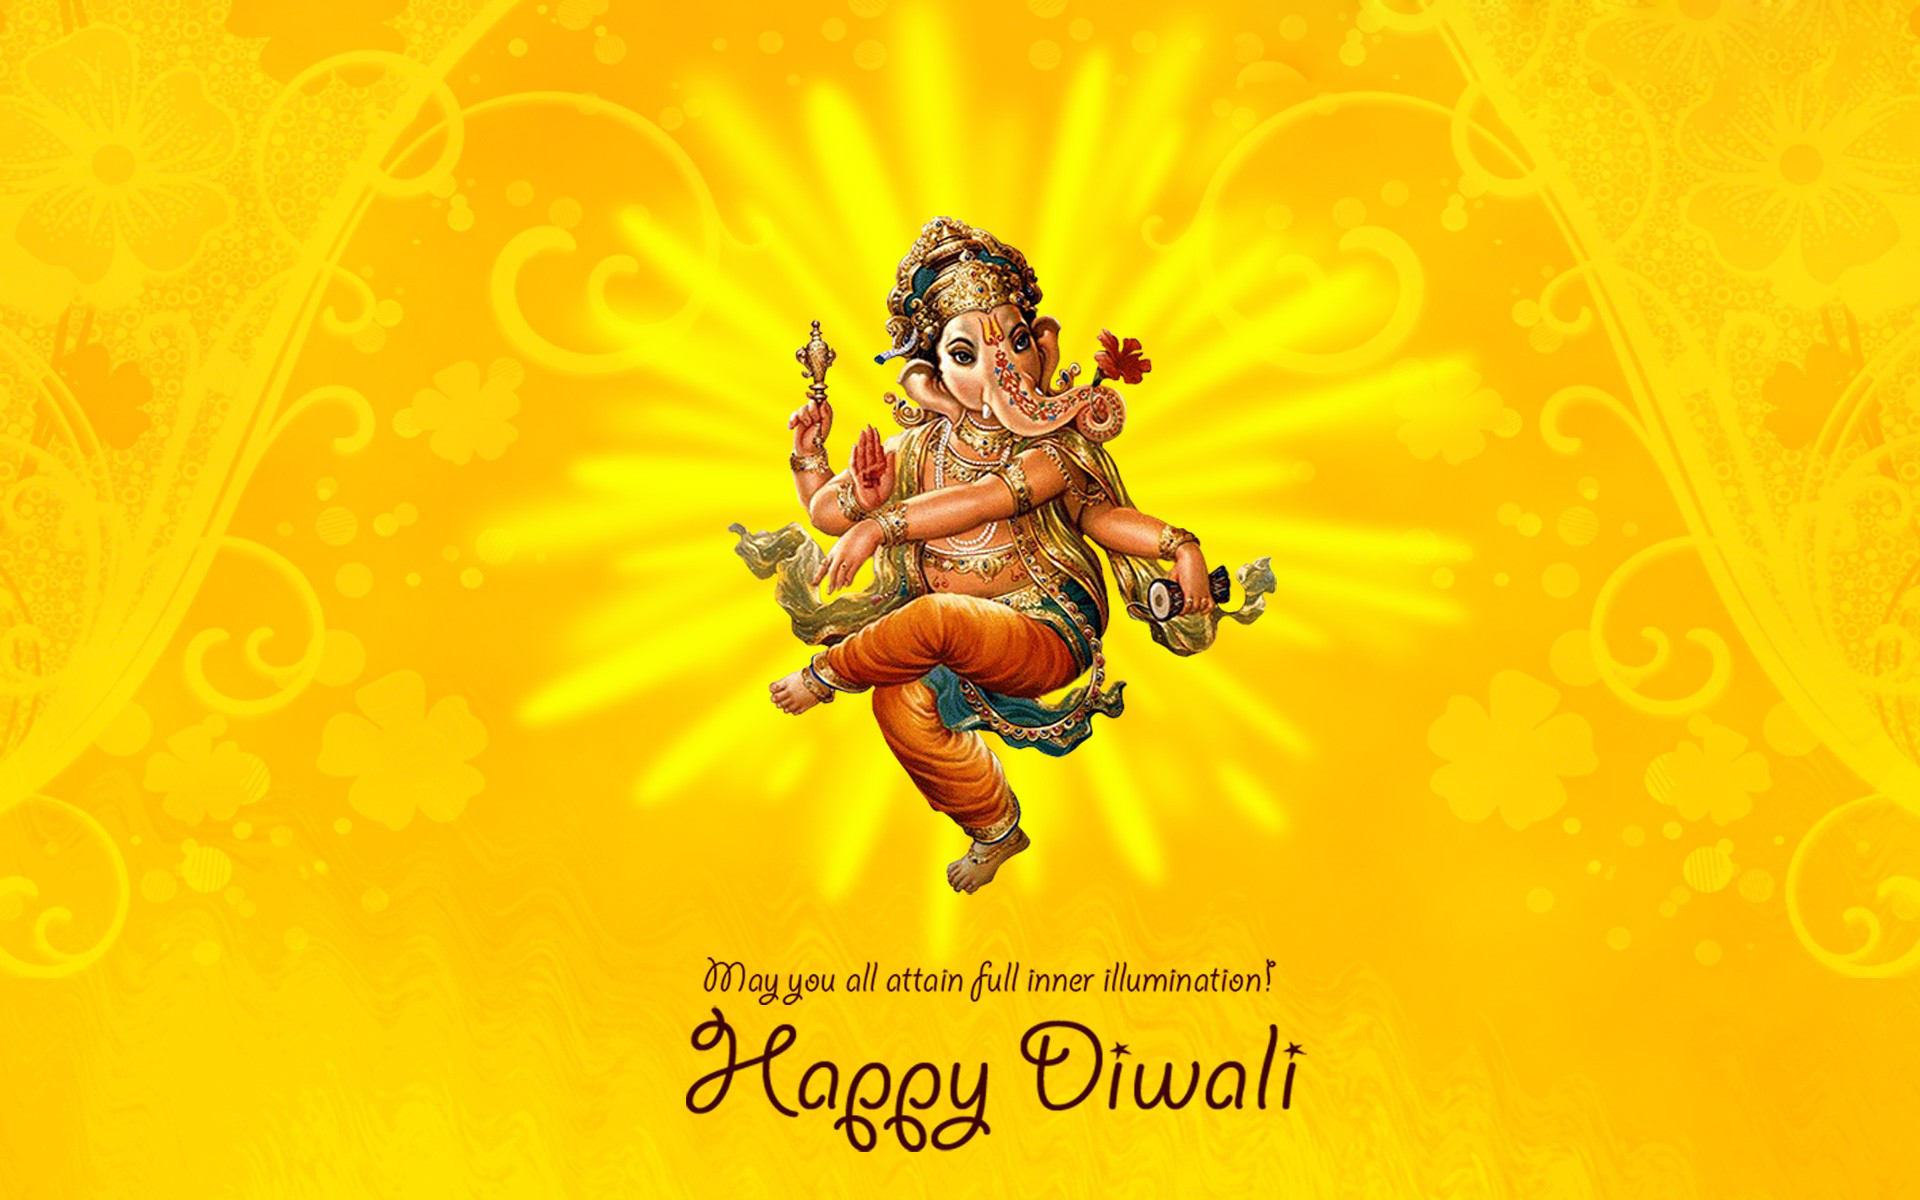 lord-ganesha-diwali-wishing-wallpaper-for-your-desktop